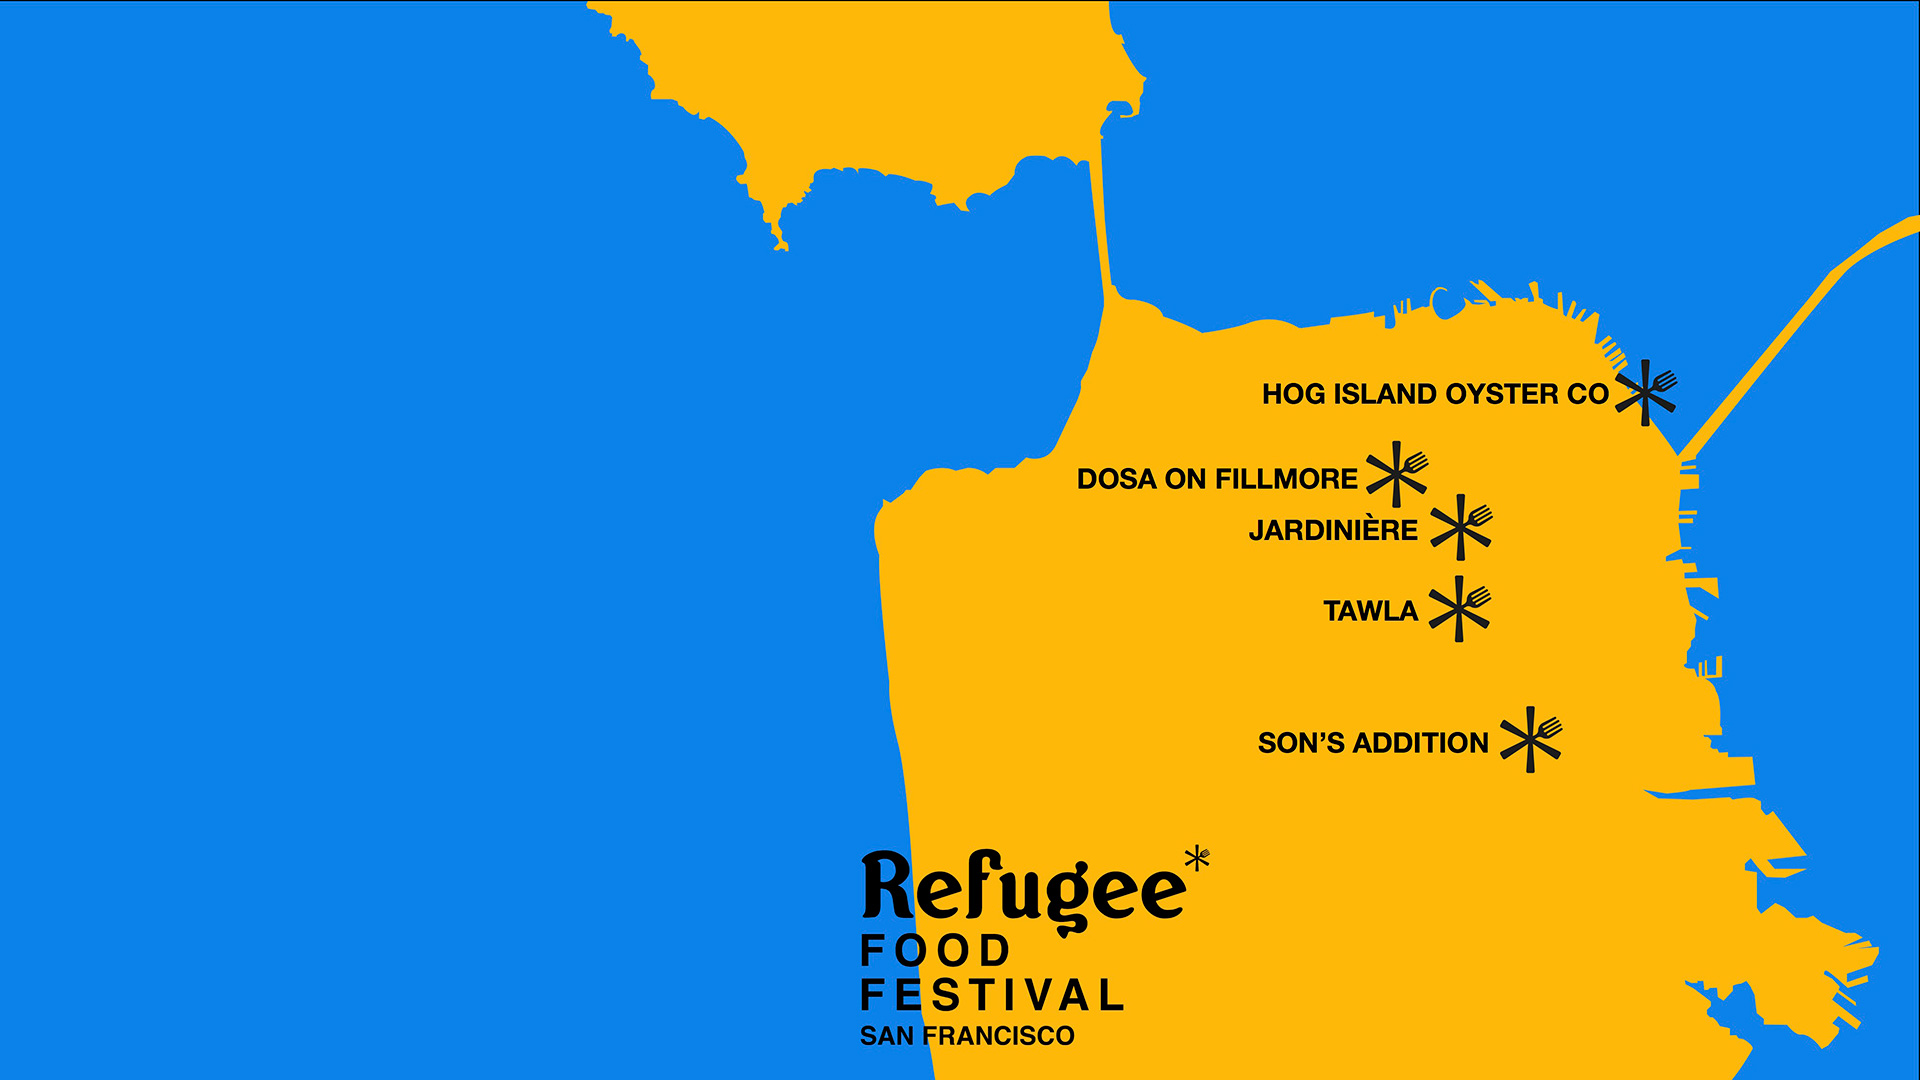 Don't miss the Refugee Food Festival in San Francisco.